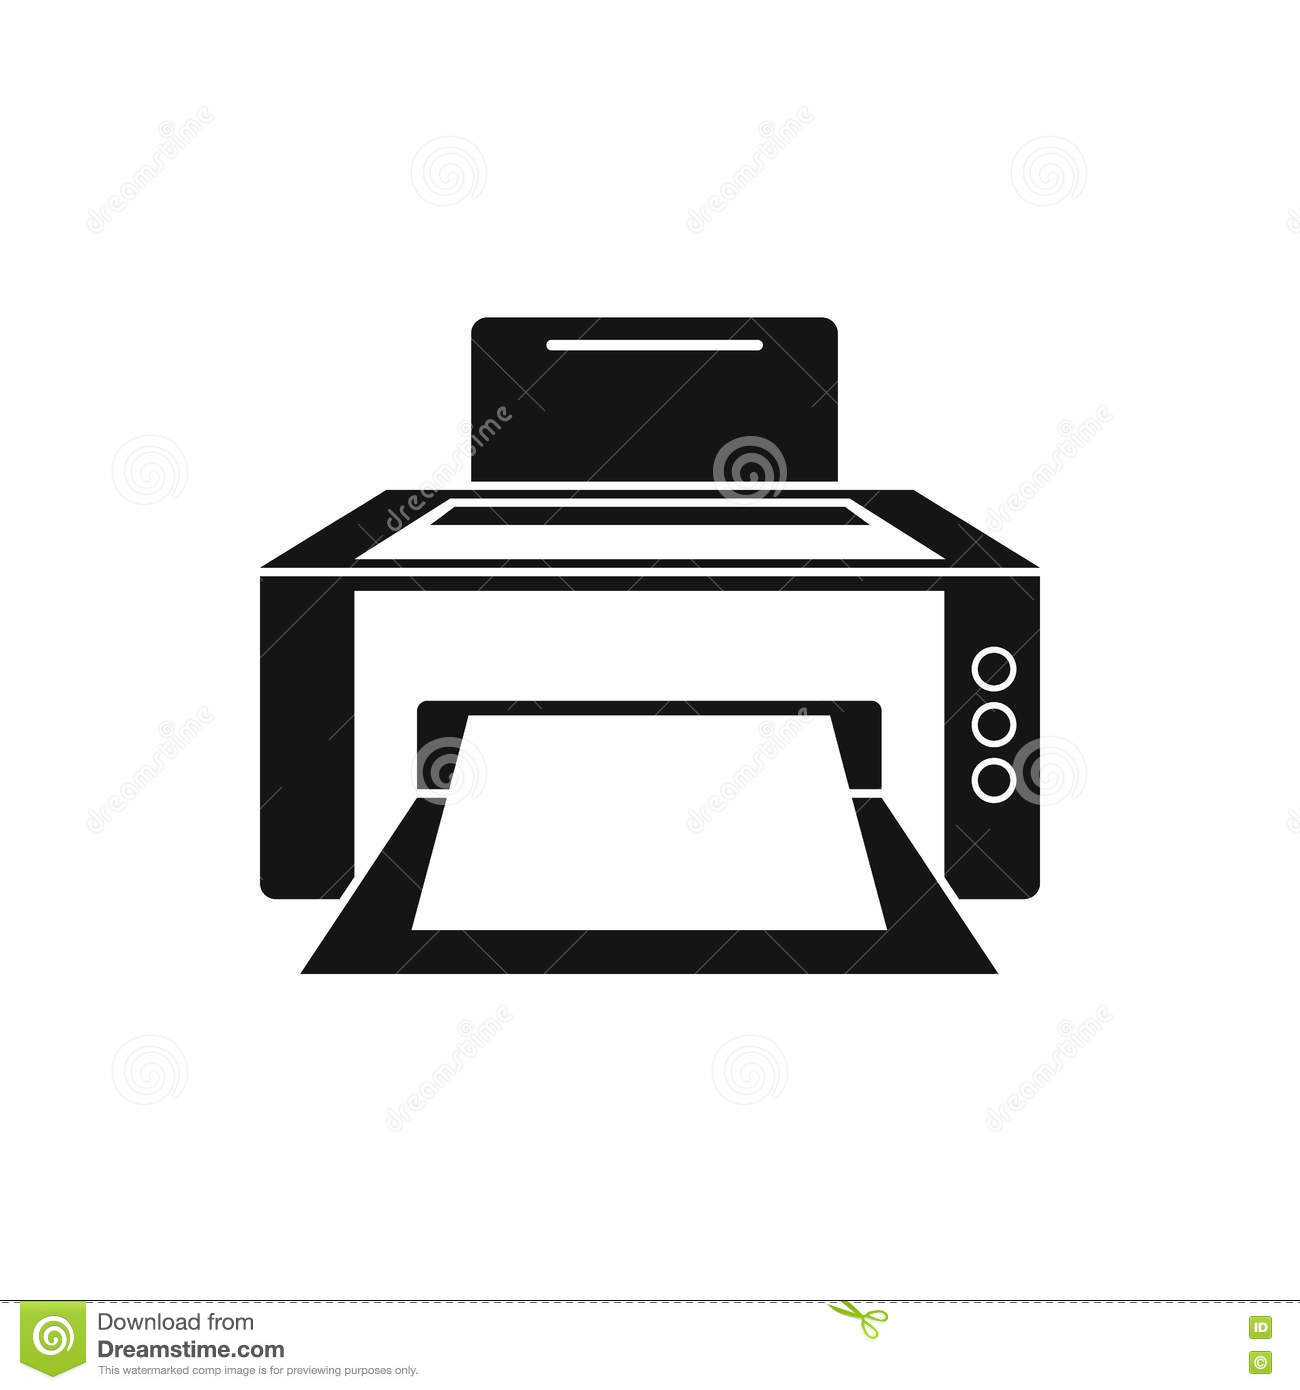 Printer Icon In Simple Style Stock Vector - Image: 78679645